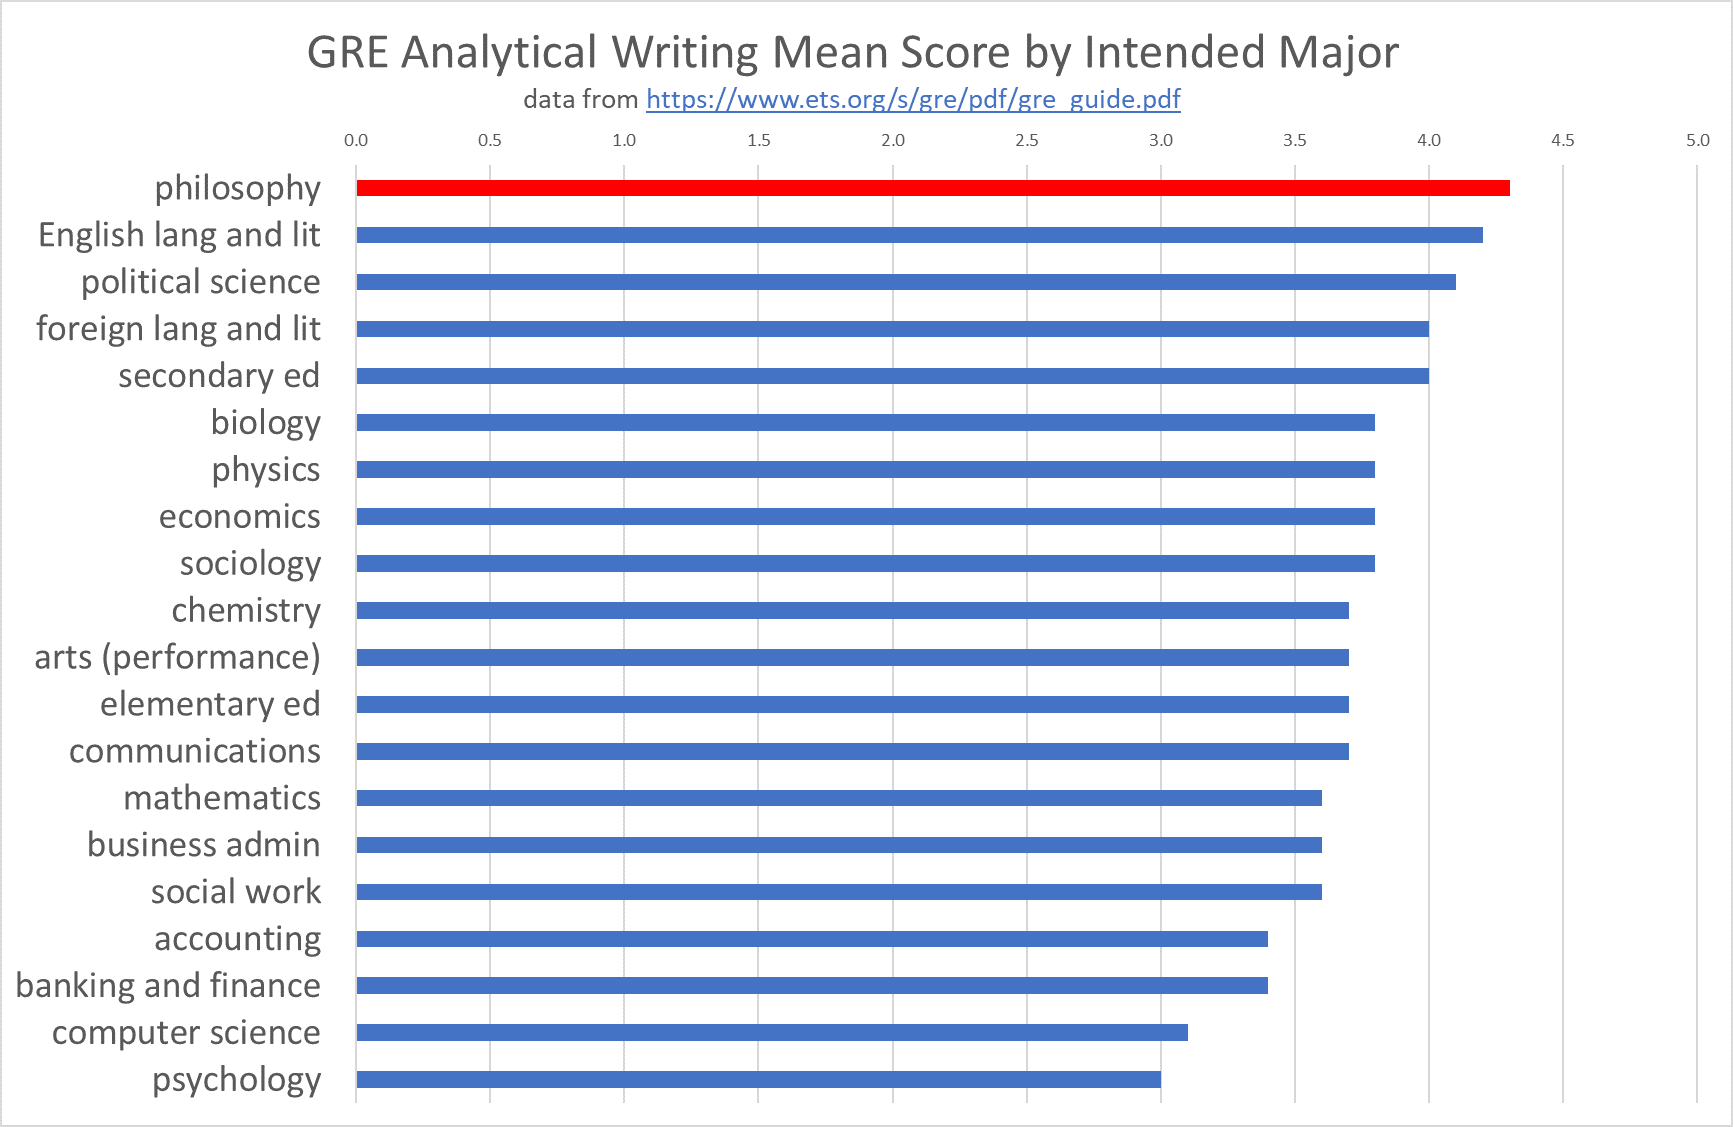 GRE Analytical Writing Mean Score